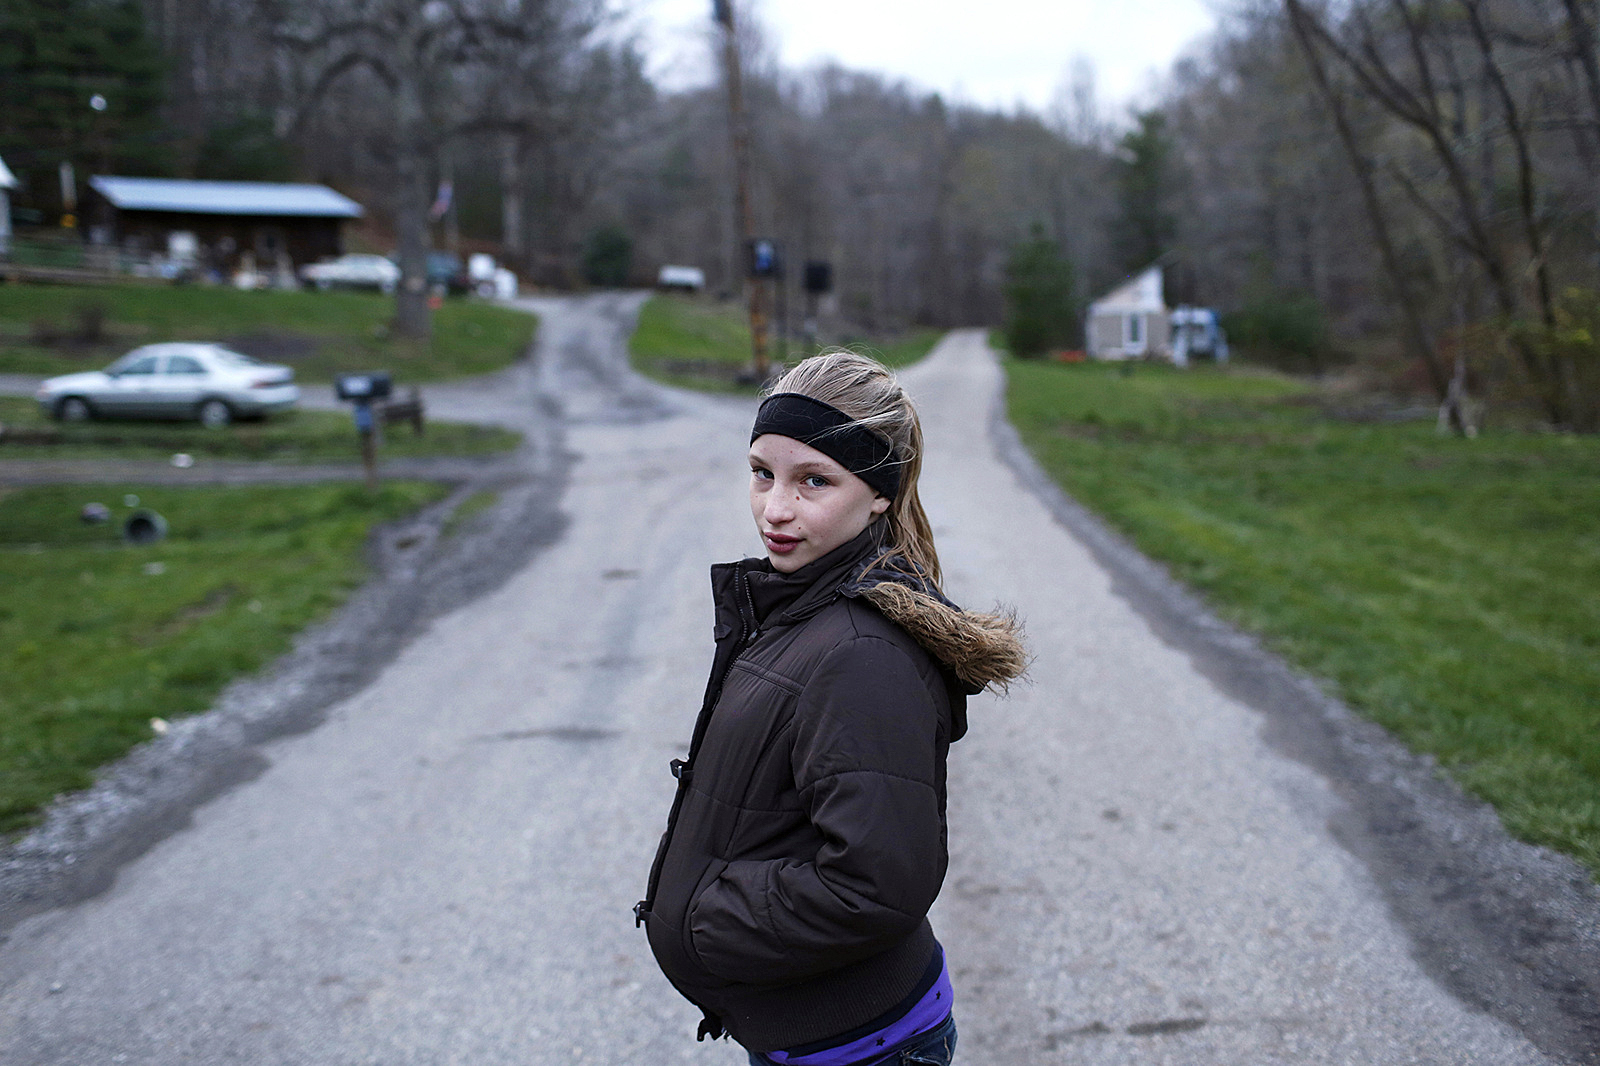 Sonya, now 13, stood on her street in Carbondale, which was a coal mining town in in Southeastern Ohio. The mines have all been closed years ago.  (Photo by Maranie Staab/GroundTruth)